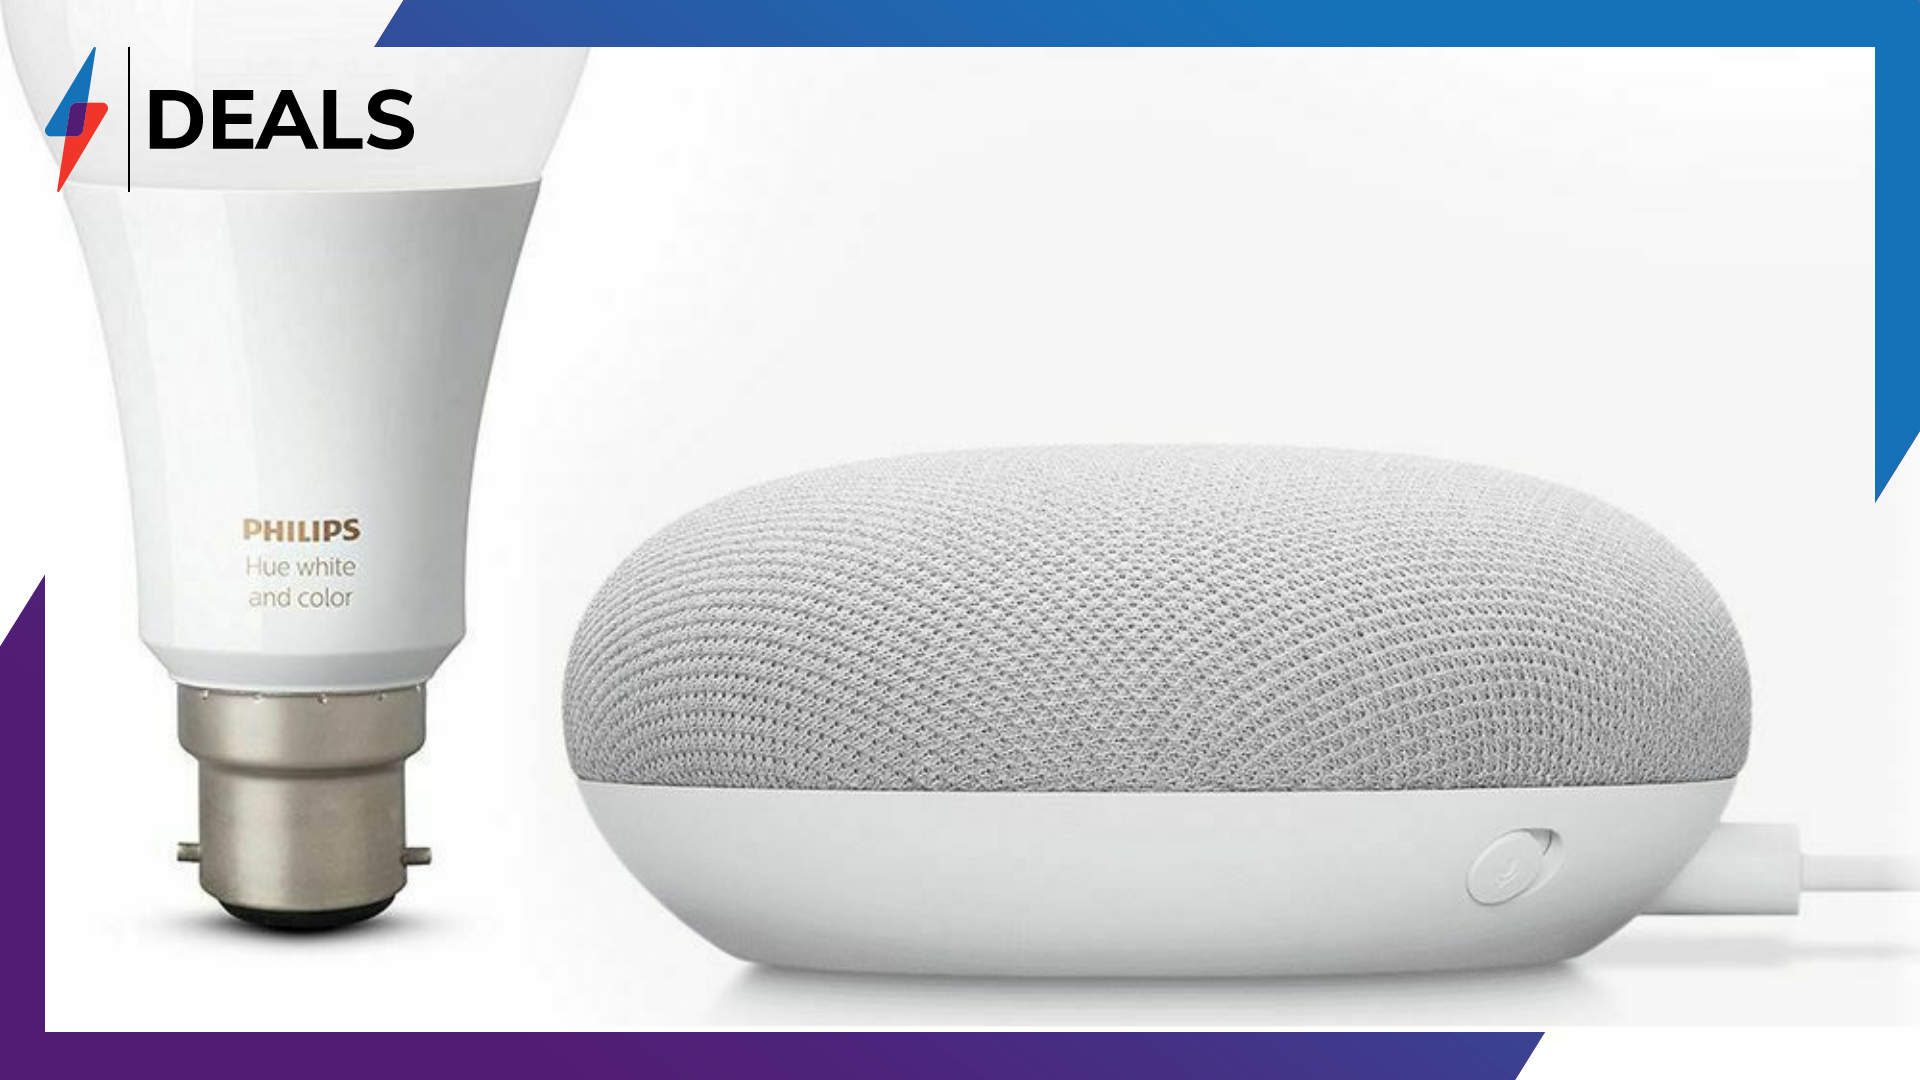 This Nest Mini and Philips Hue deal is the perfect smart home bundle